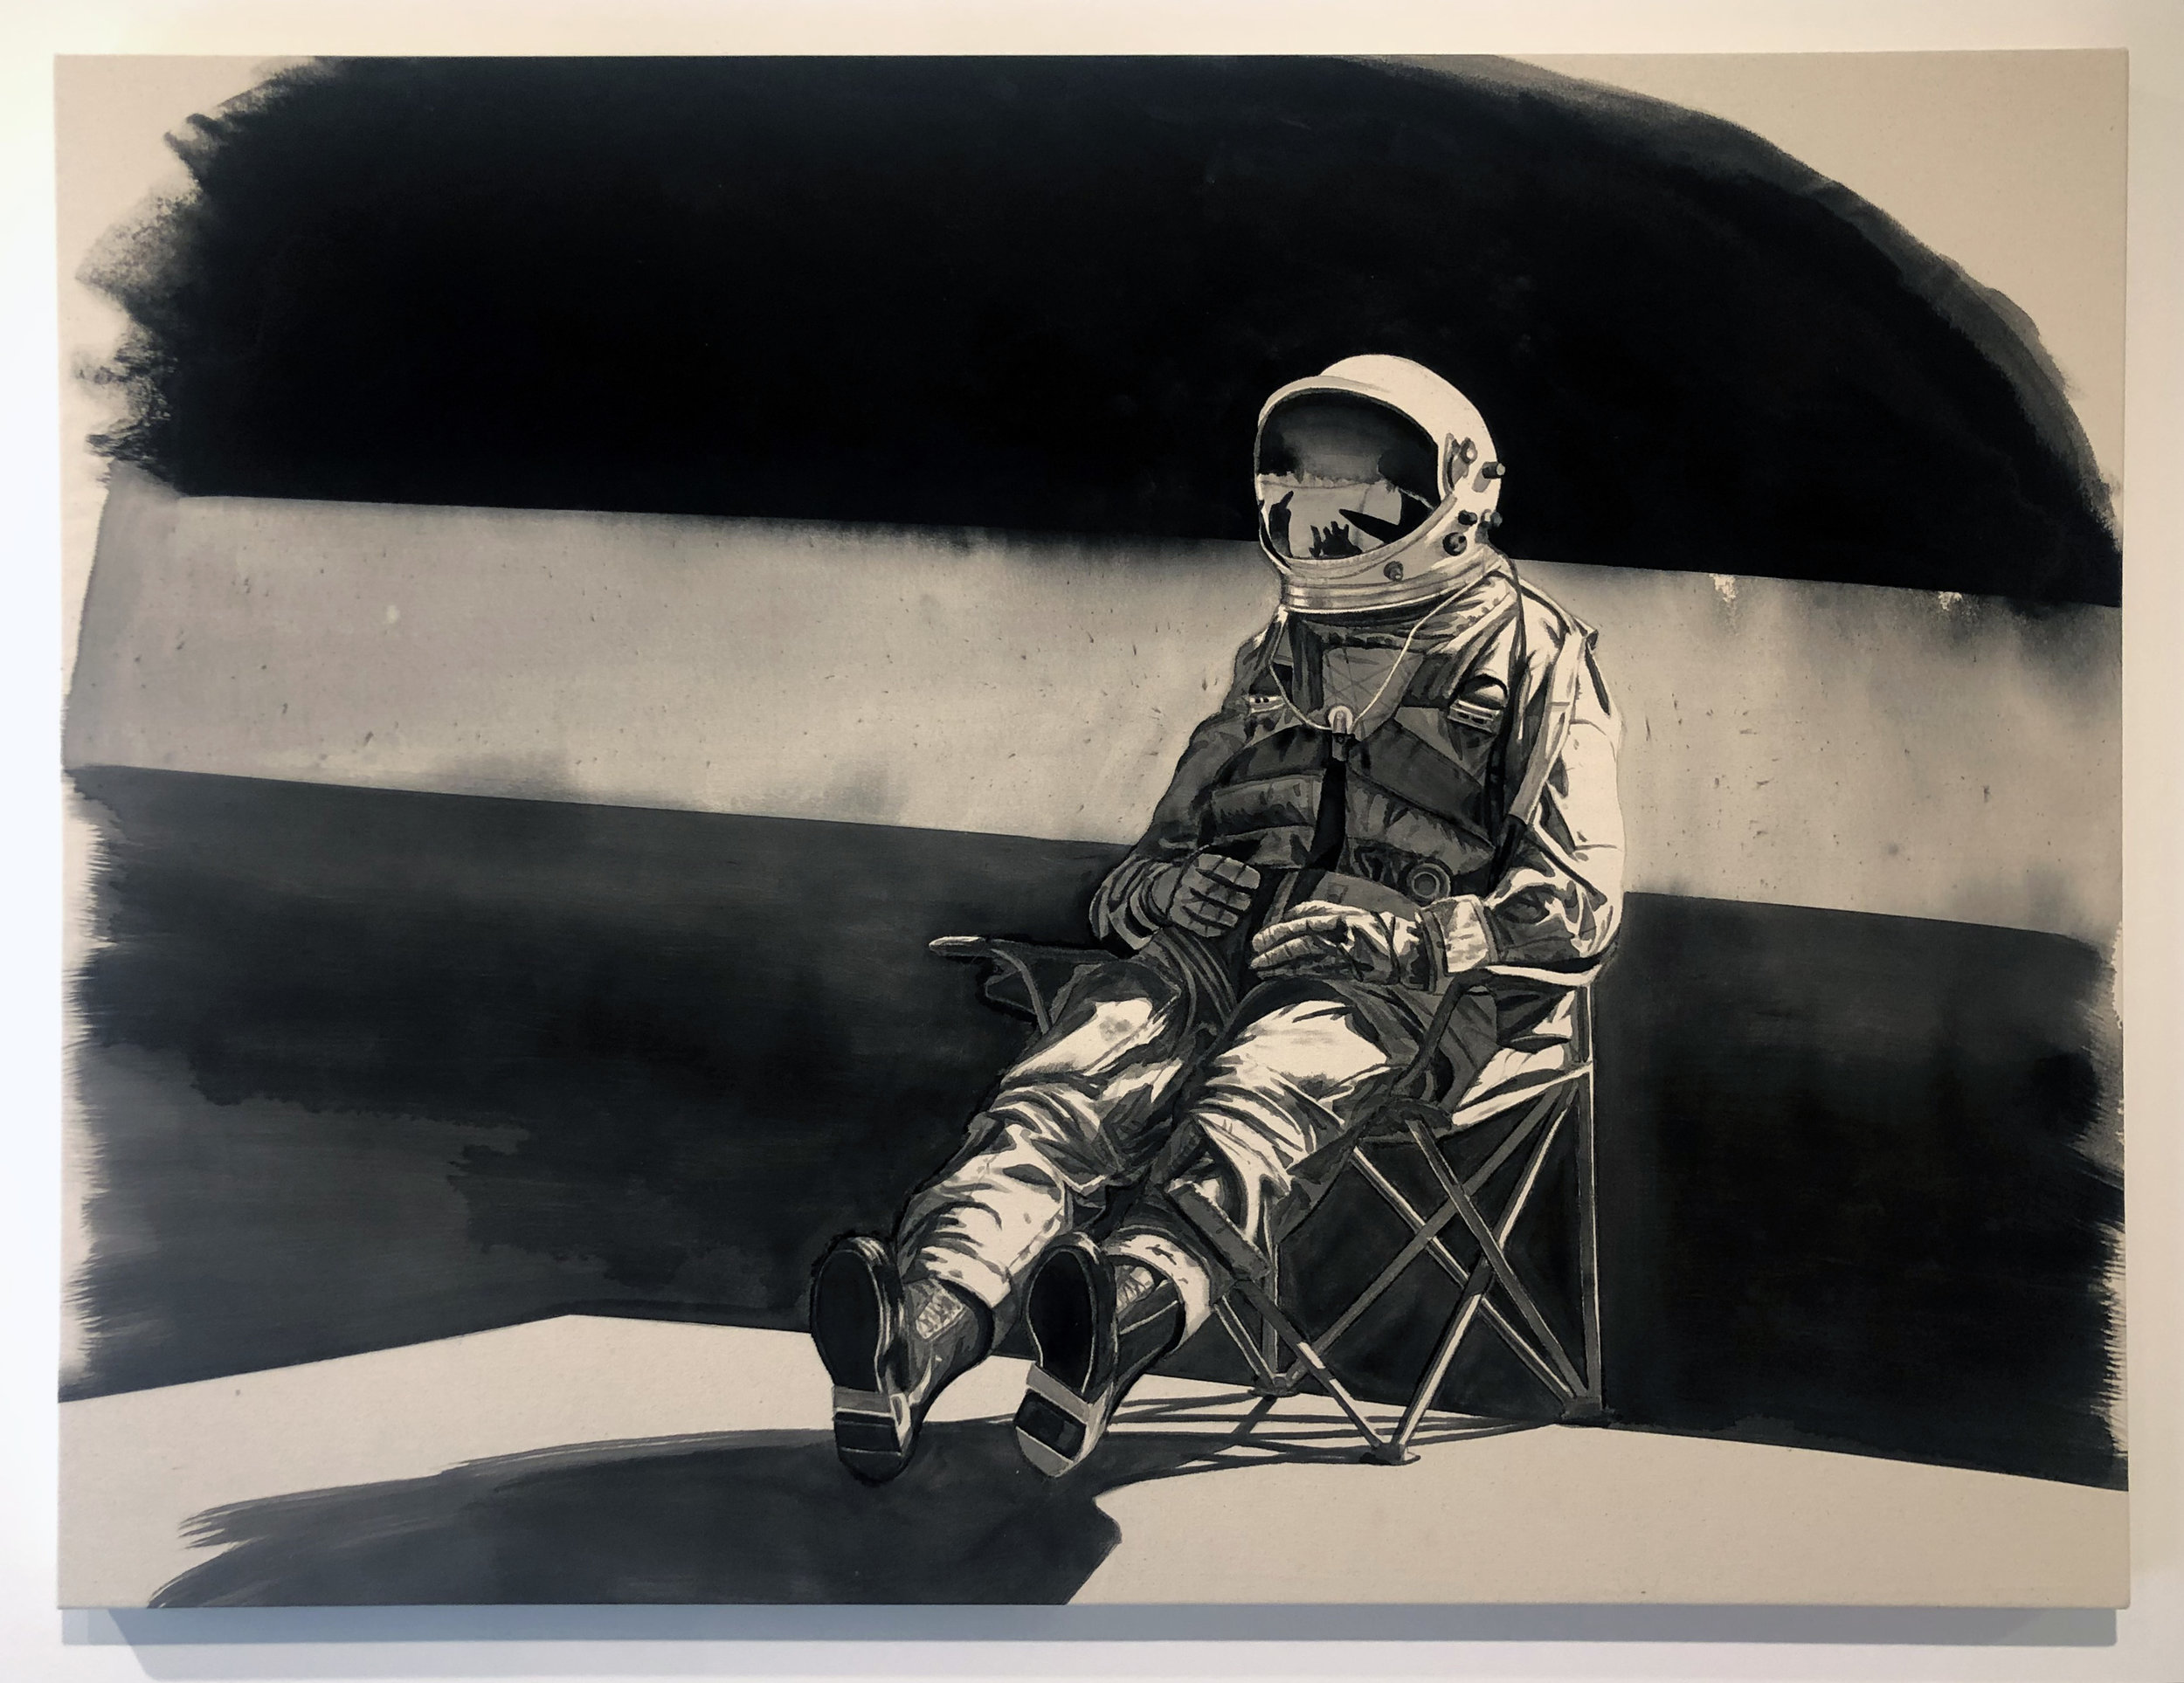 The Astronaut,  2019 Black gesso on canvas 36 x 48 inches (91.4cm x 122cm)